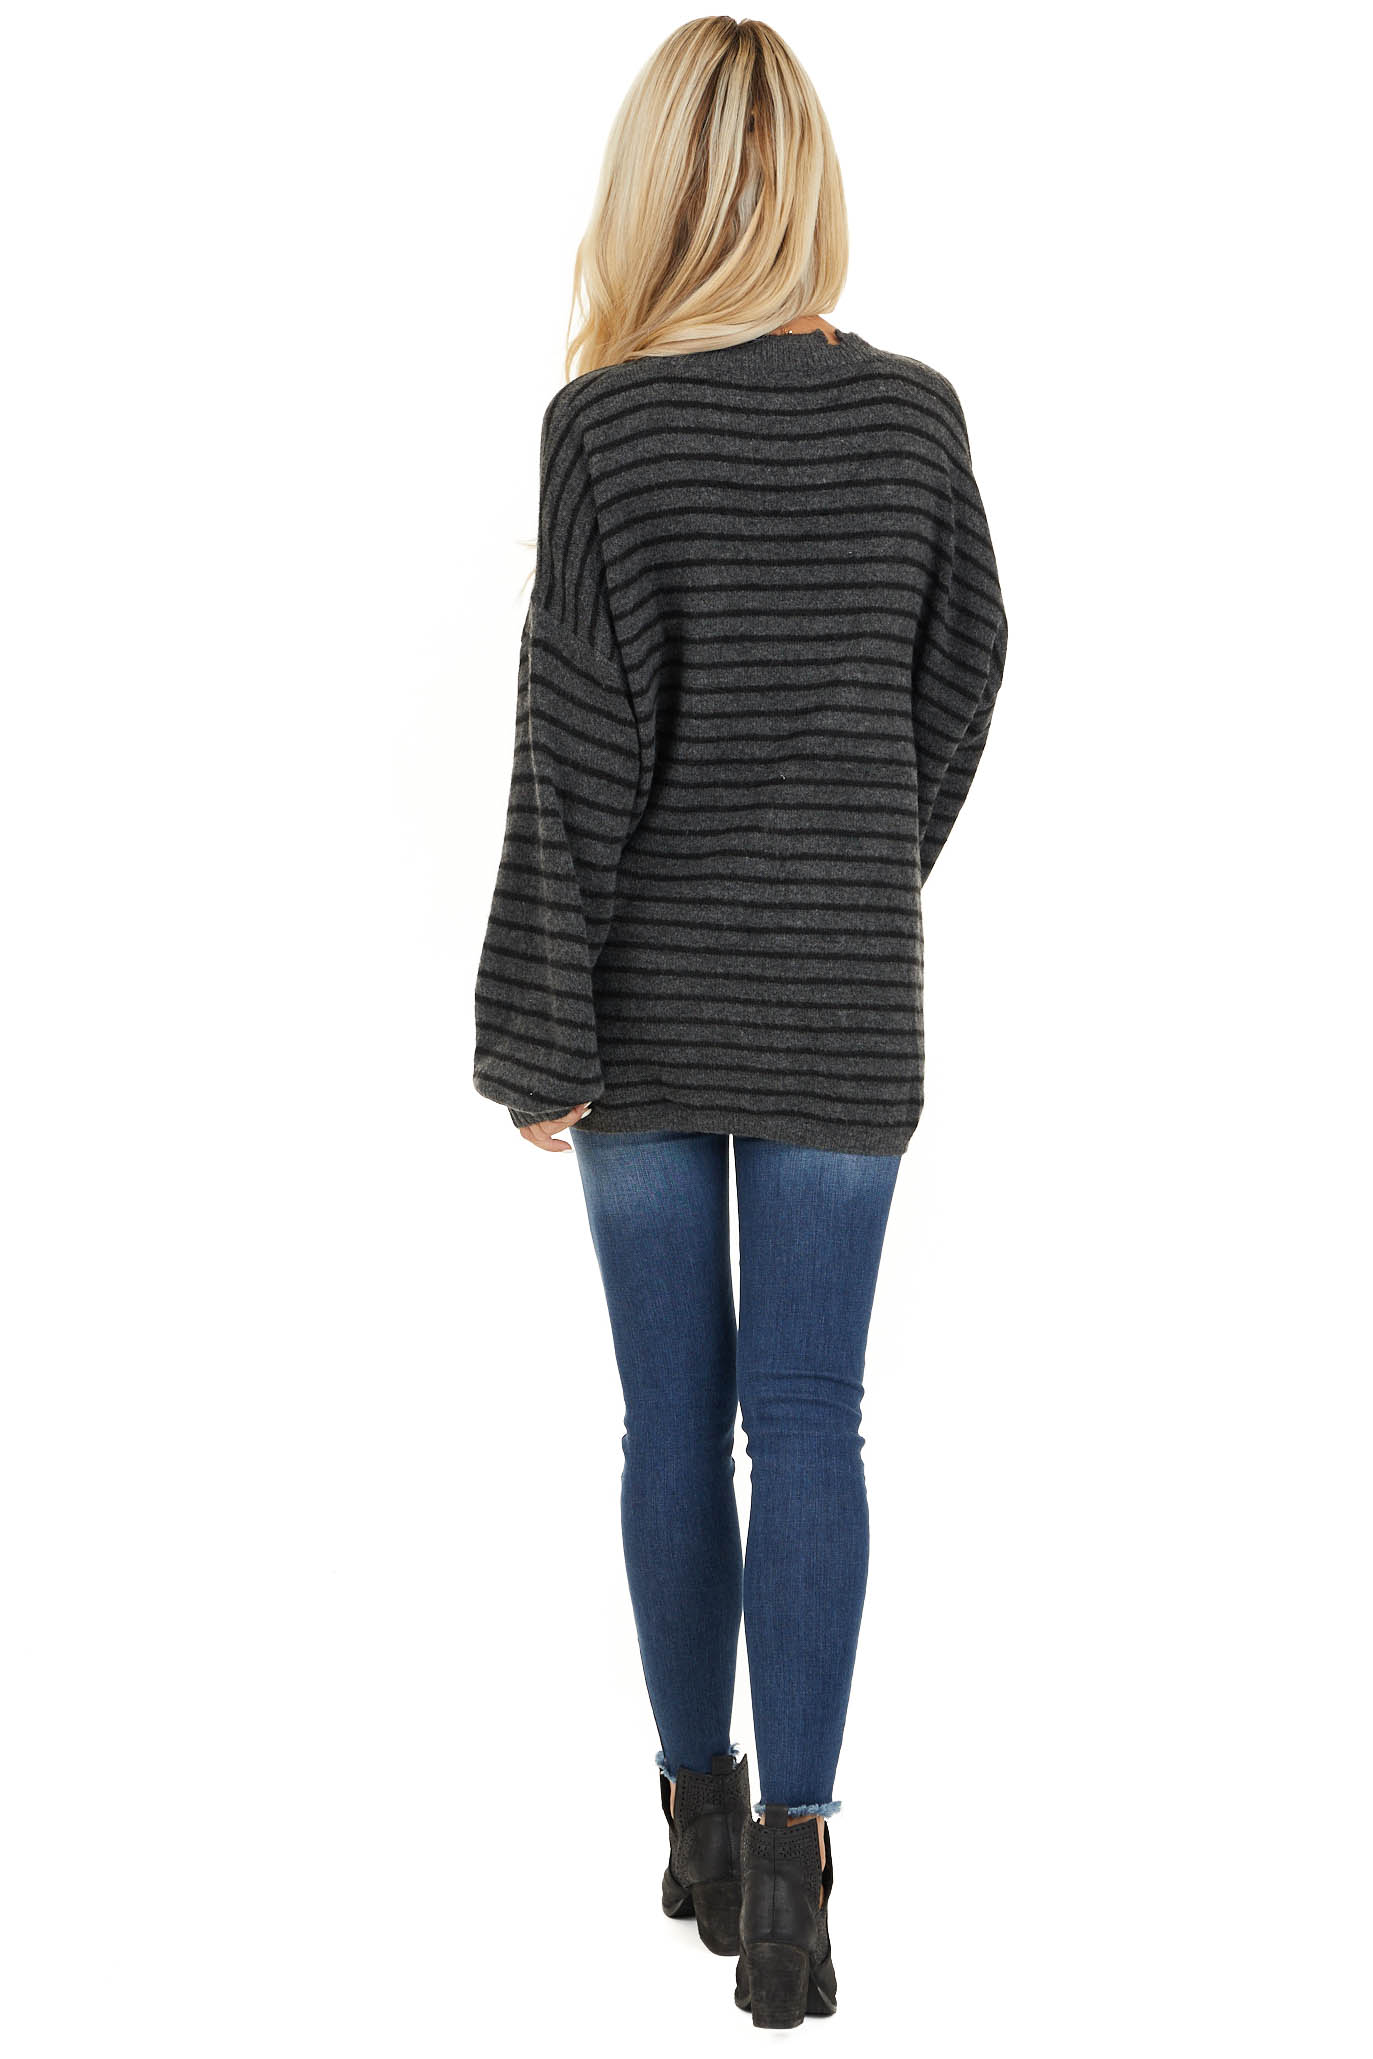 Black and Charcoal Striped Sweater with Distressed Neckline back full body